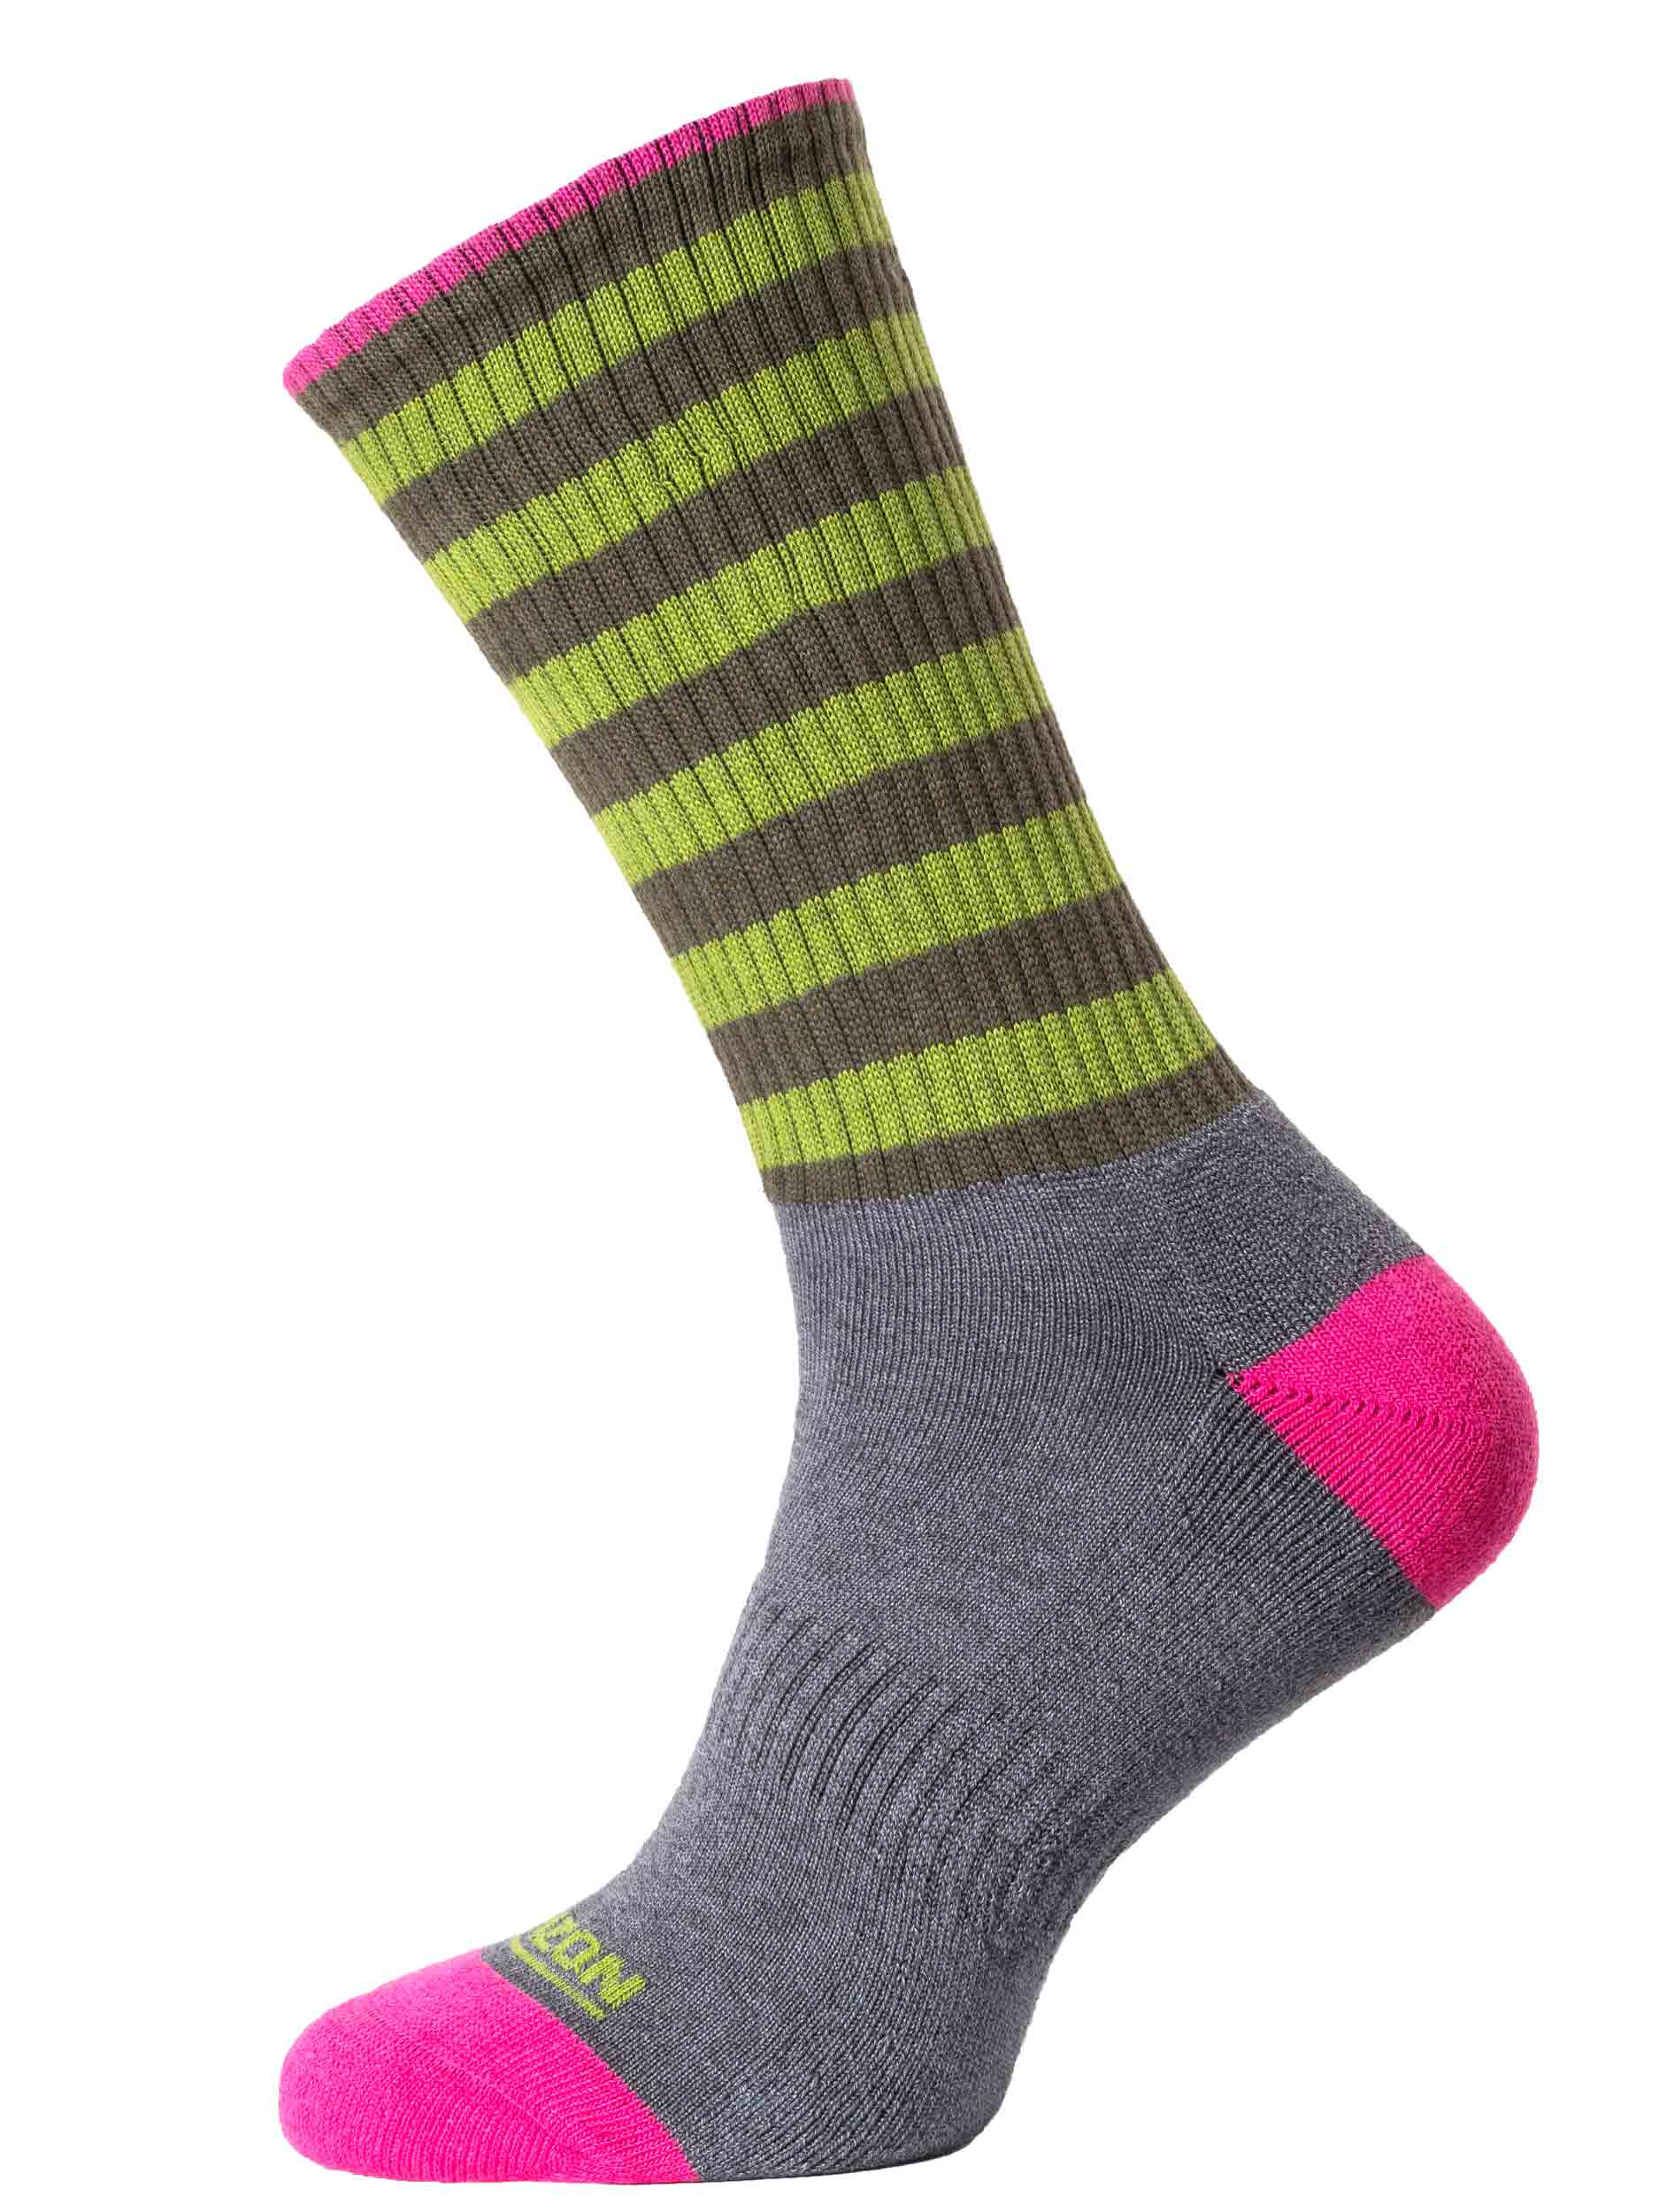 Horizon Leisure Bamboo Mens Sock Charcoal Apple